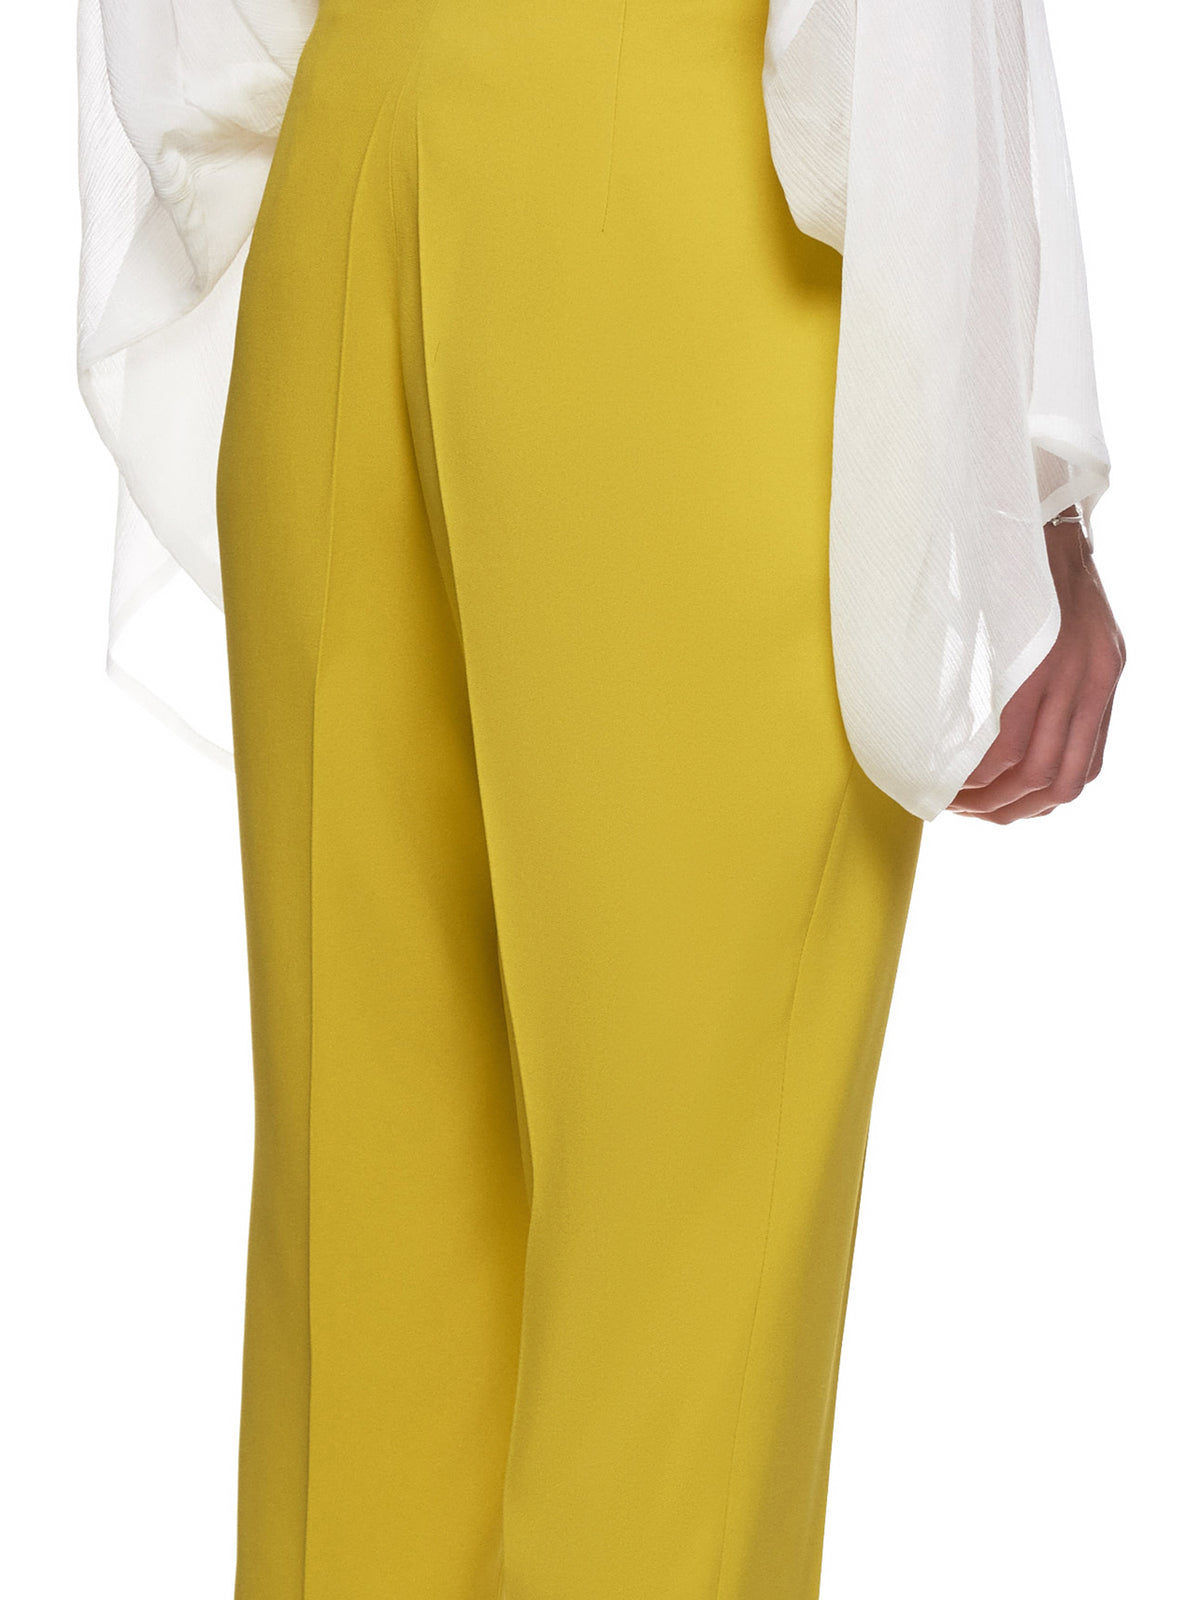 'Tuxedo Cigarette Trousers' (10-CIGARETTE-YELLOW)